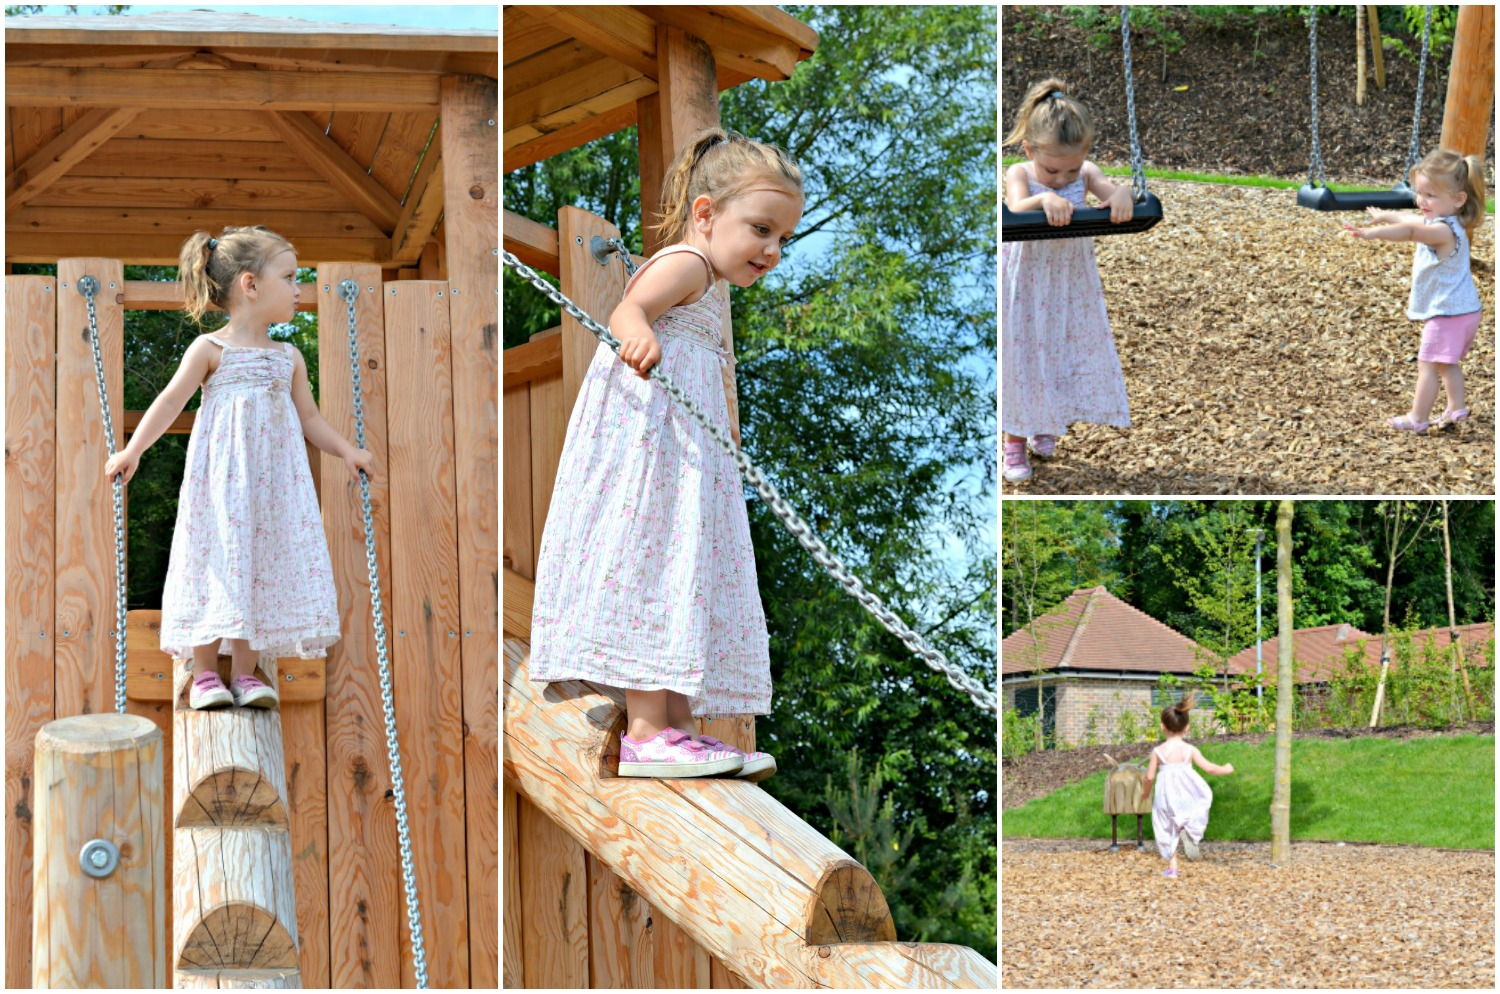 park, children, playground, new park, summer, hot weather, dress, pretty, fun in the sun